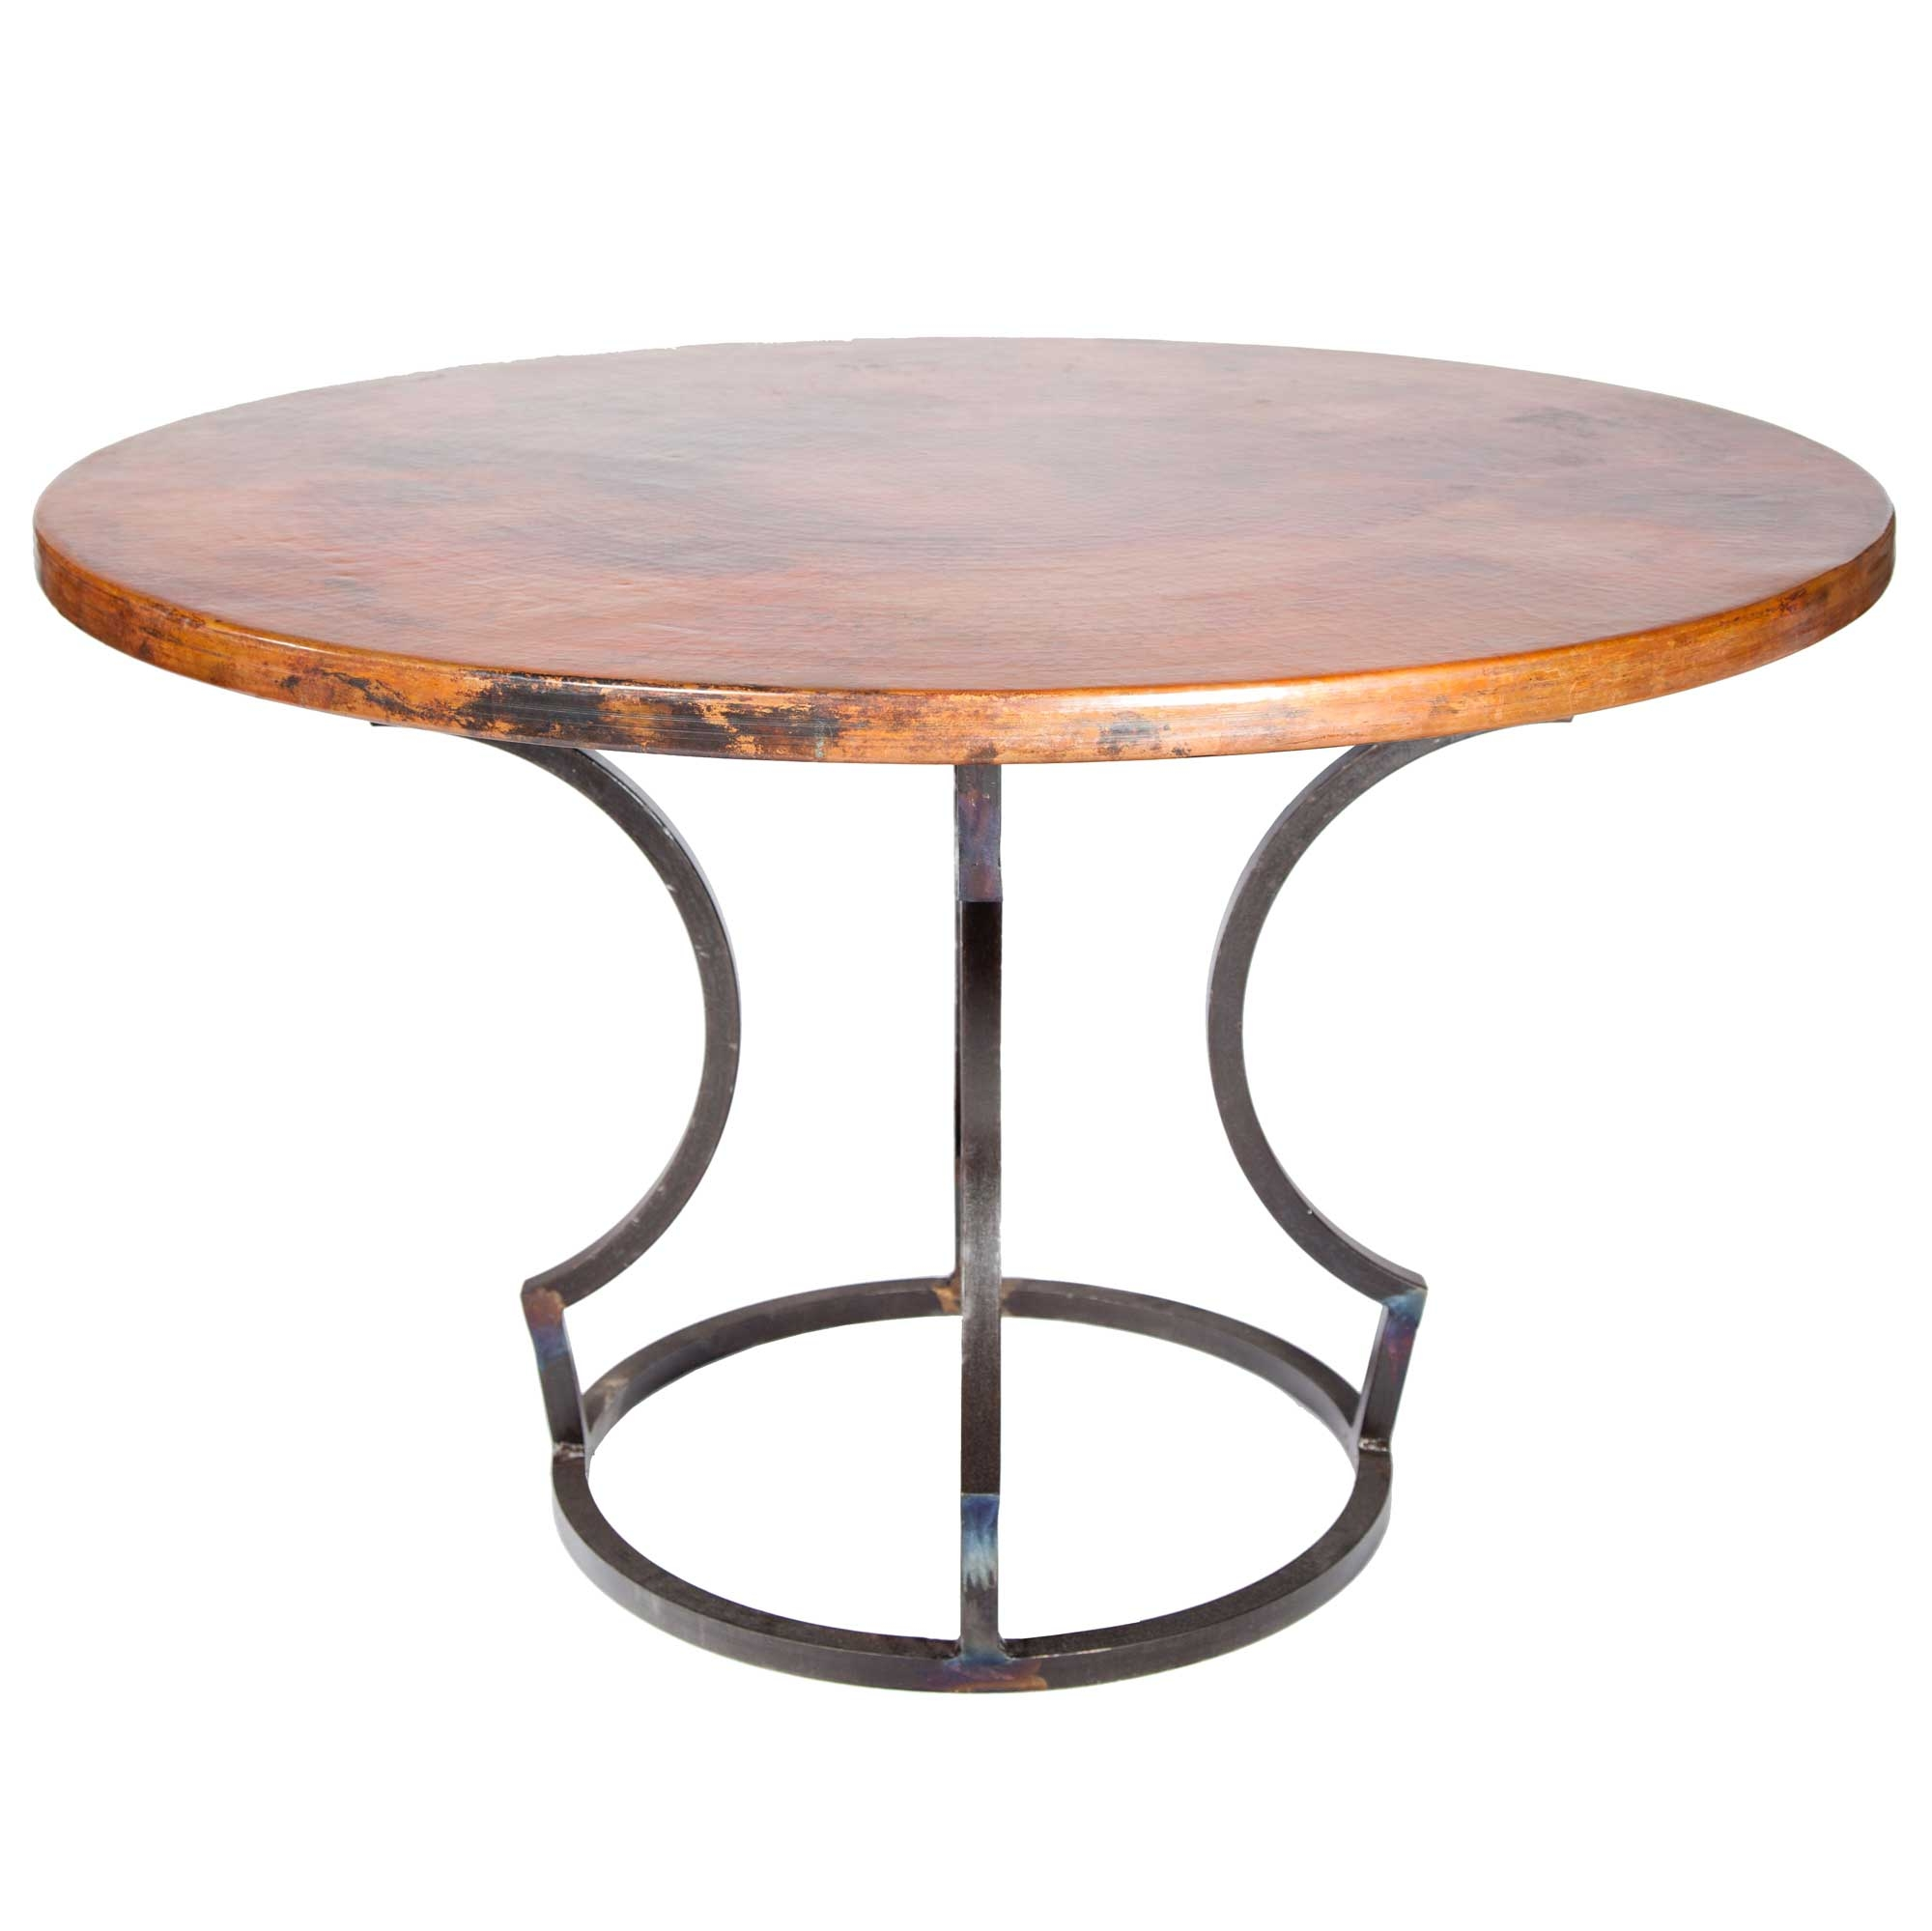 Charles Iron Dining Table with 48 Round Hammered Copper Top